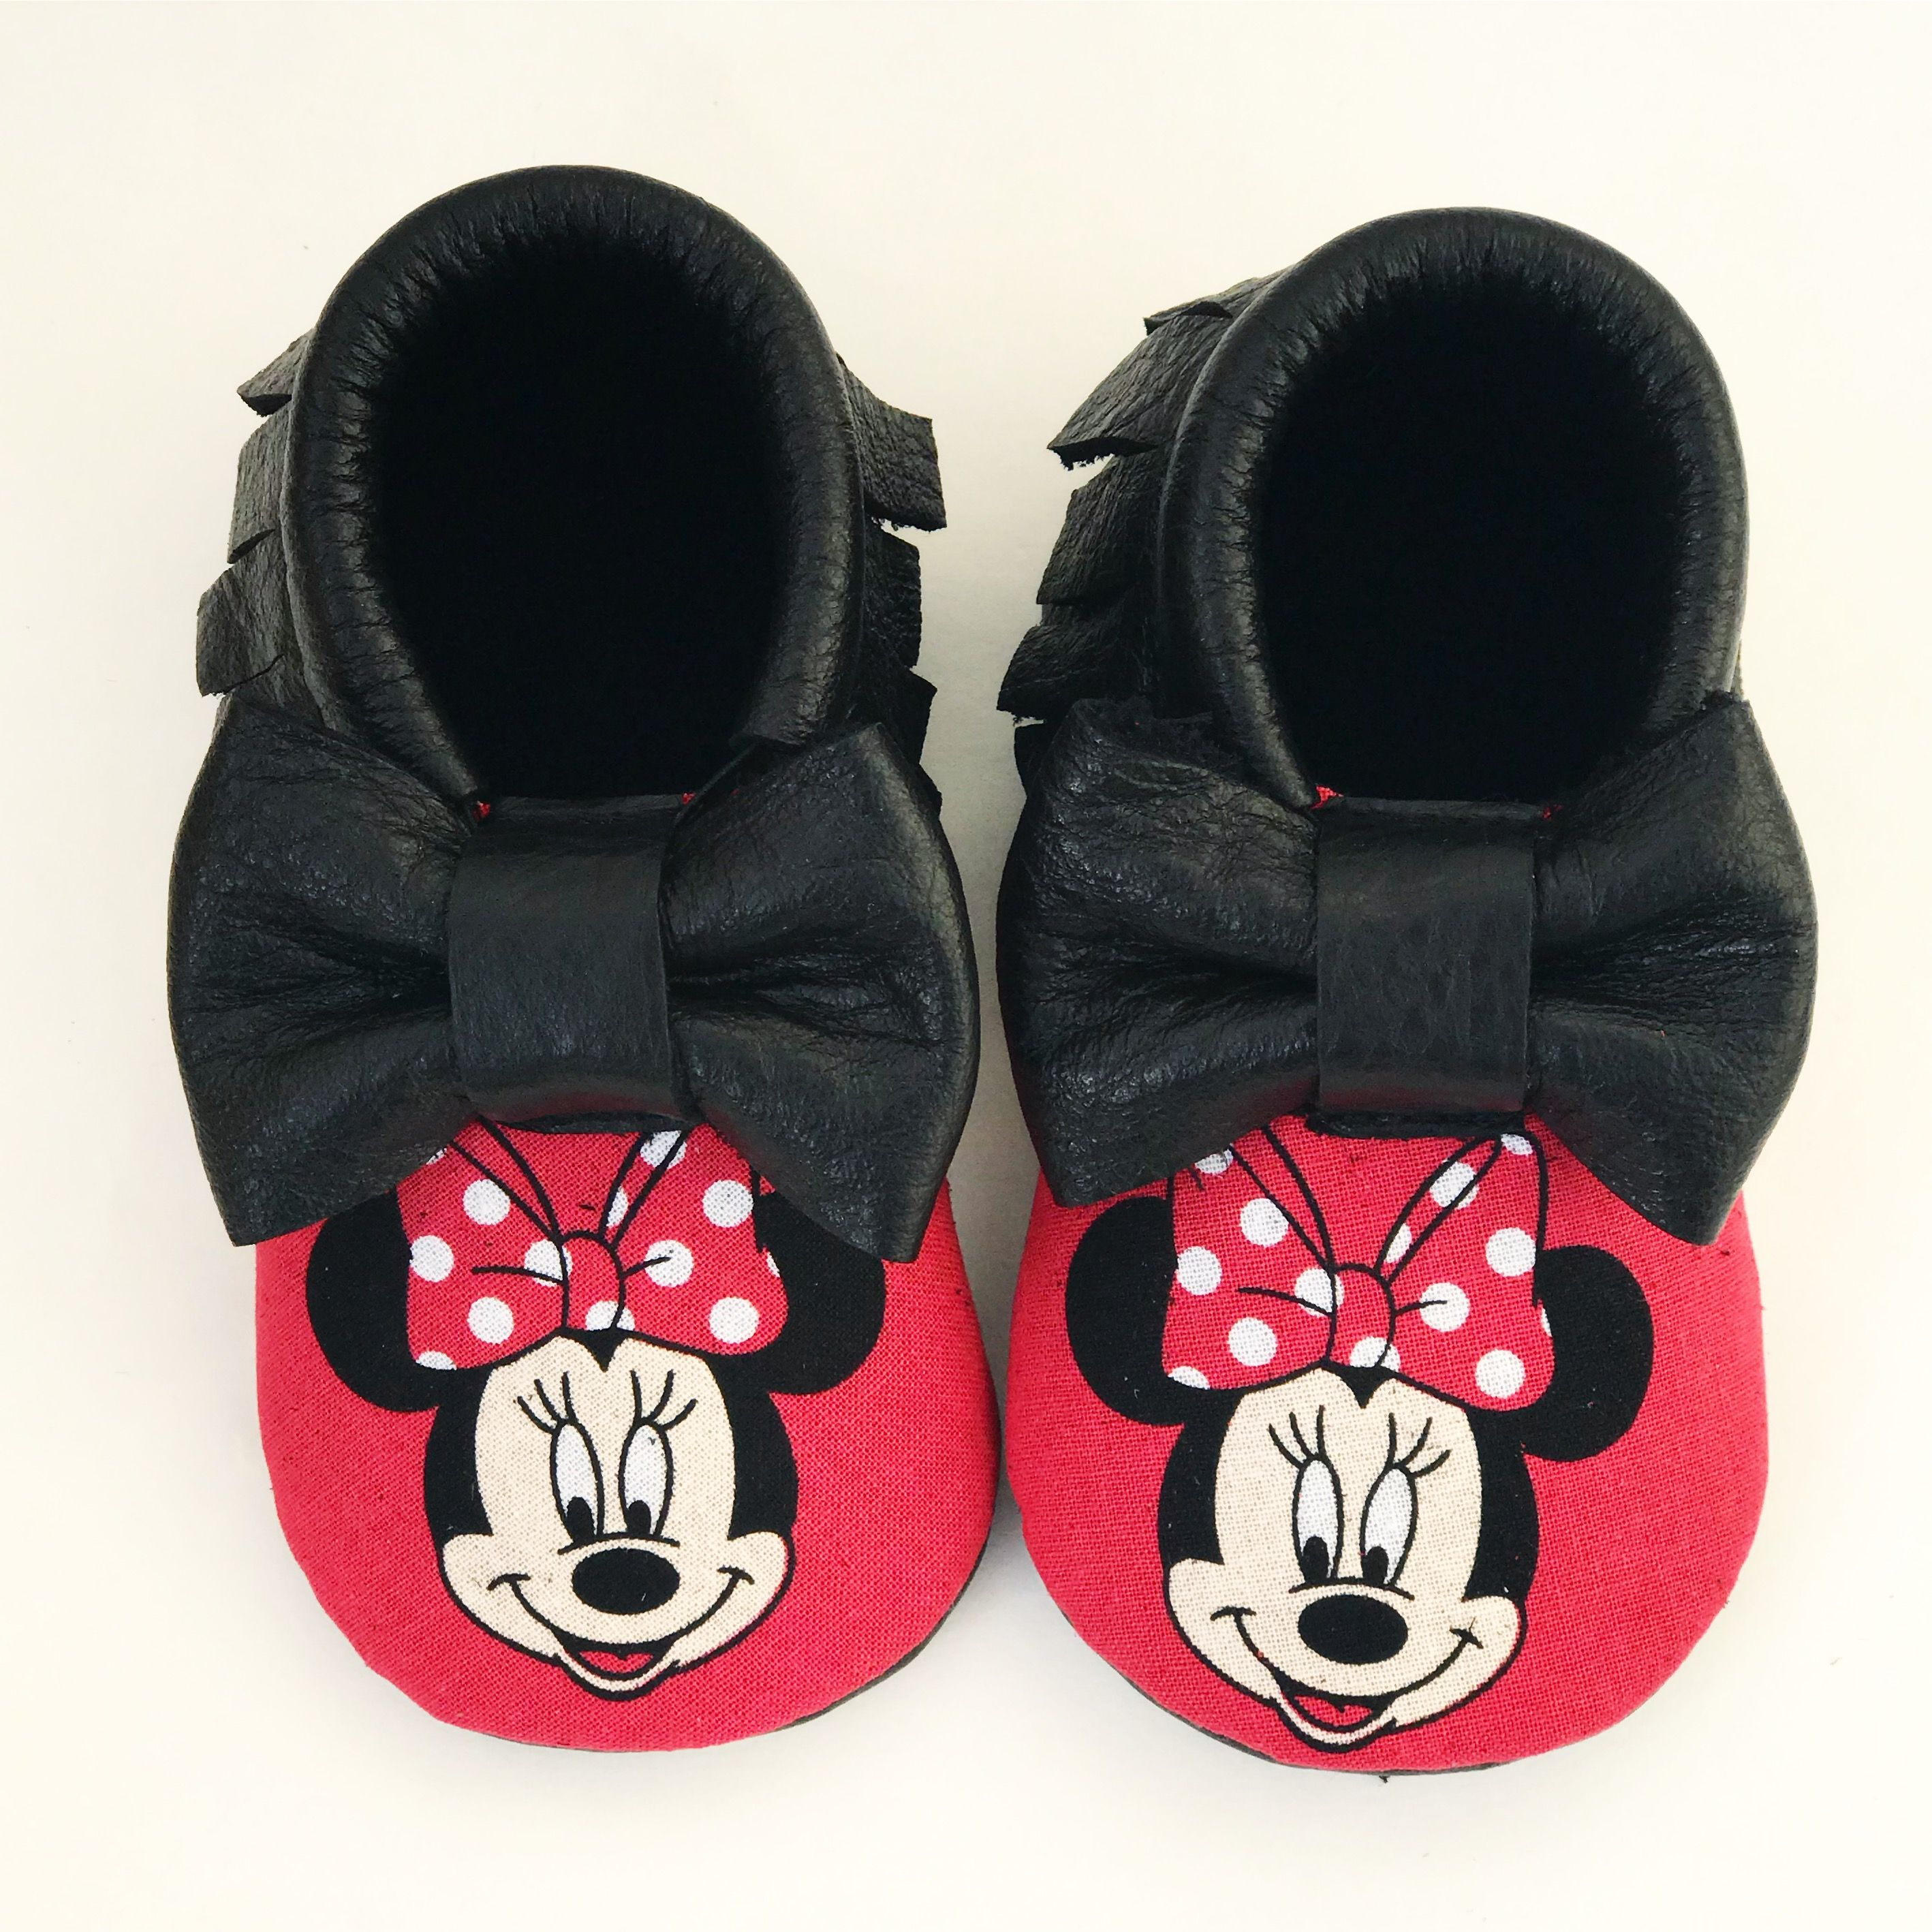 2840f14388274 Minnie Mouse Moccs | Baby Shoes & Clothes | Toddler moccasins, Baby ...